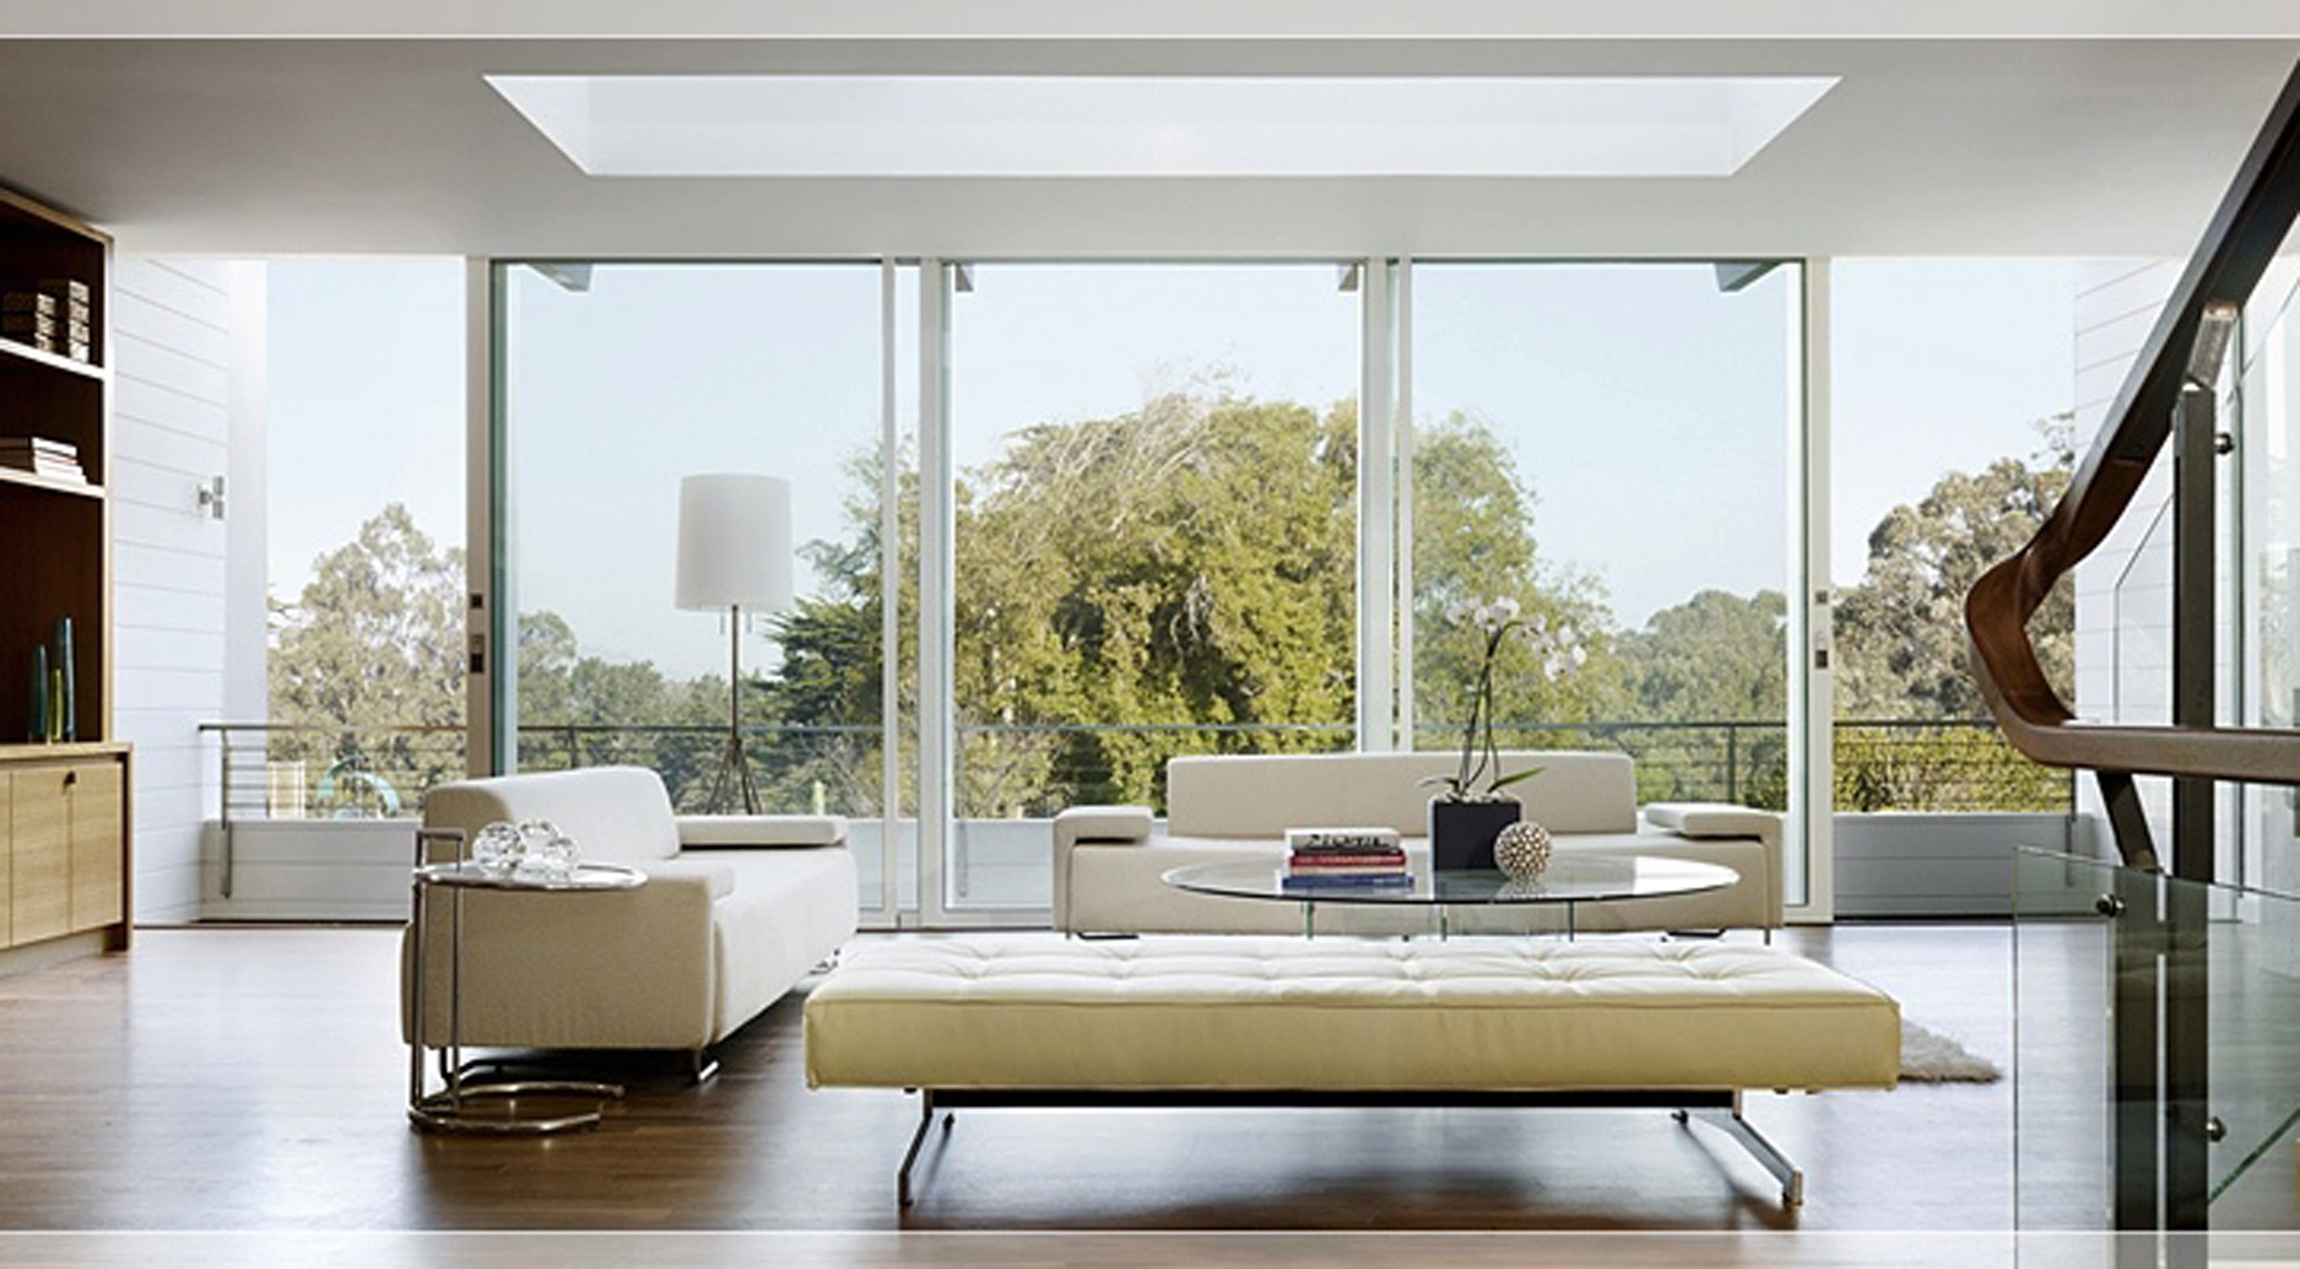 Modern Living Room Decoration Astounding Ceiling Window Skylight And Glazed Window With Beautiful View Astonishing Living Rooms Design With Ceiling Window Skylight (Image 3 of 30)